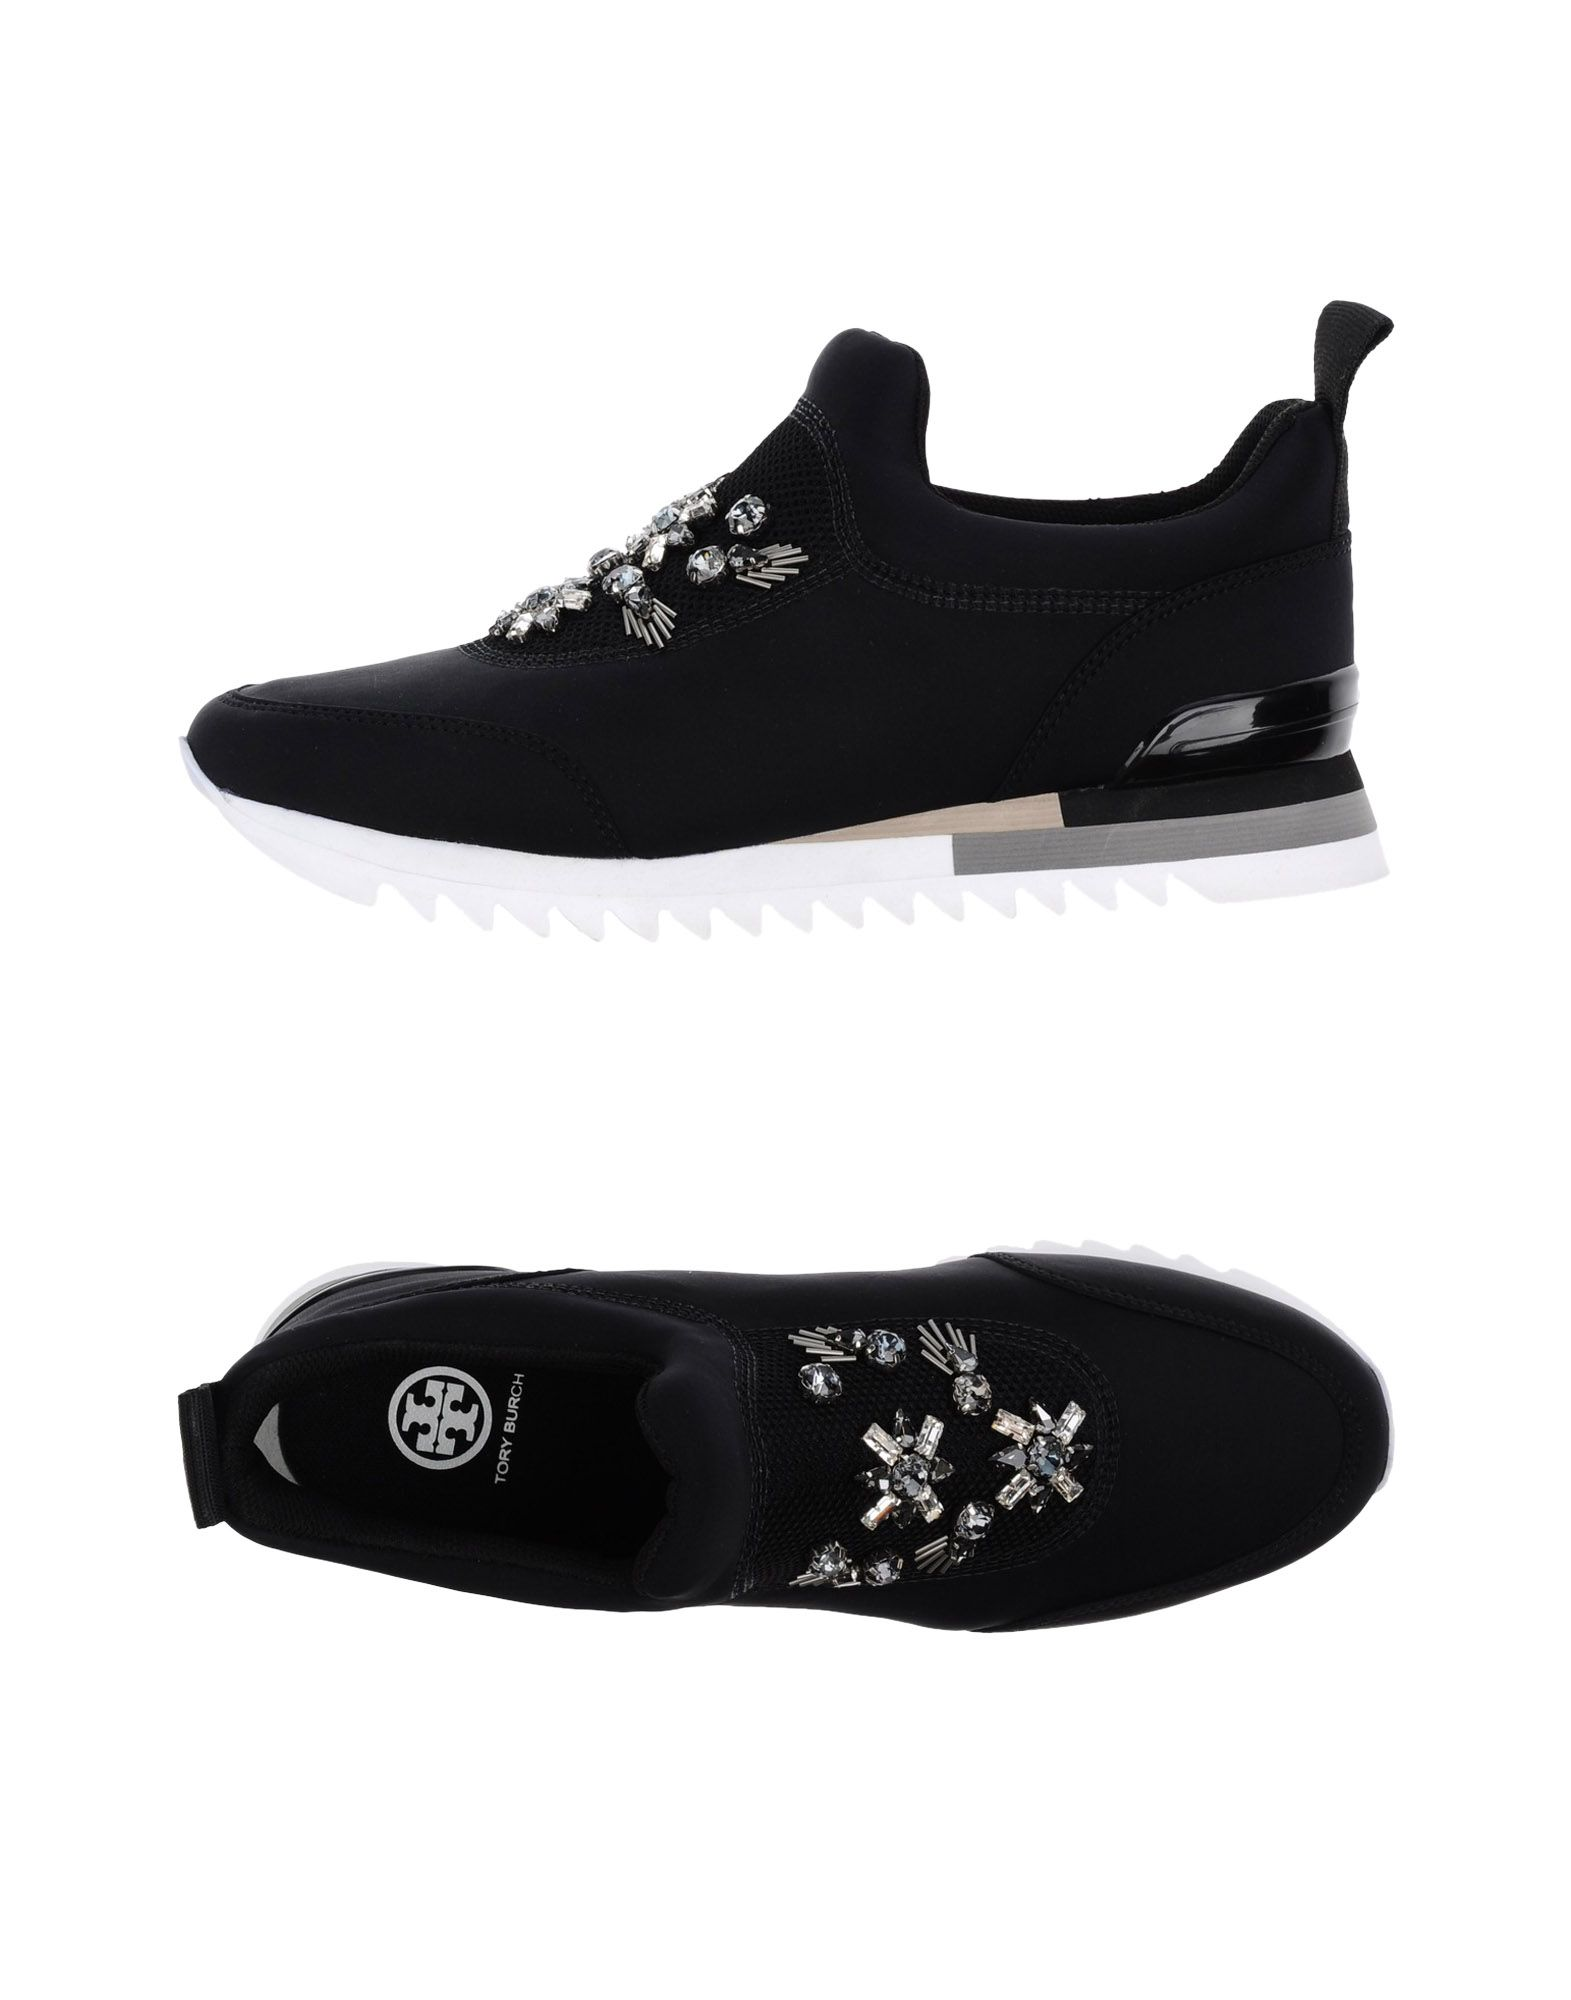 Sneakers Tory Burch Femme - Sneakers Tory Burch sur